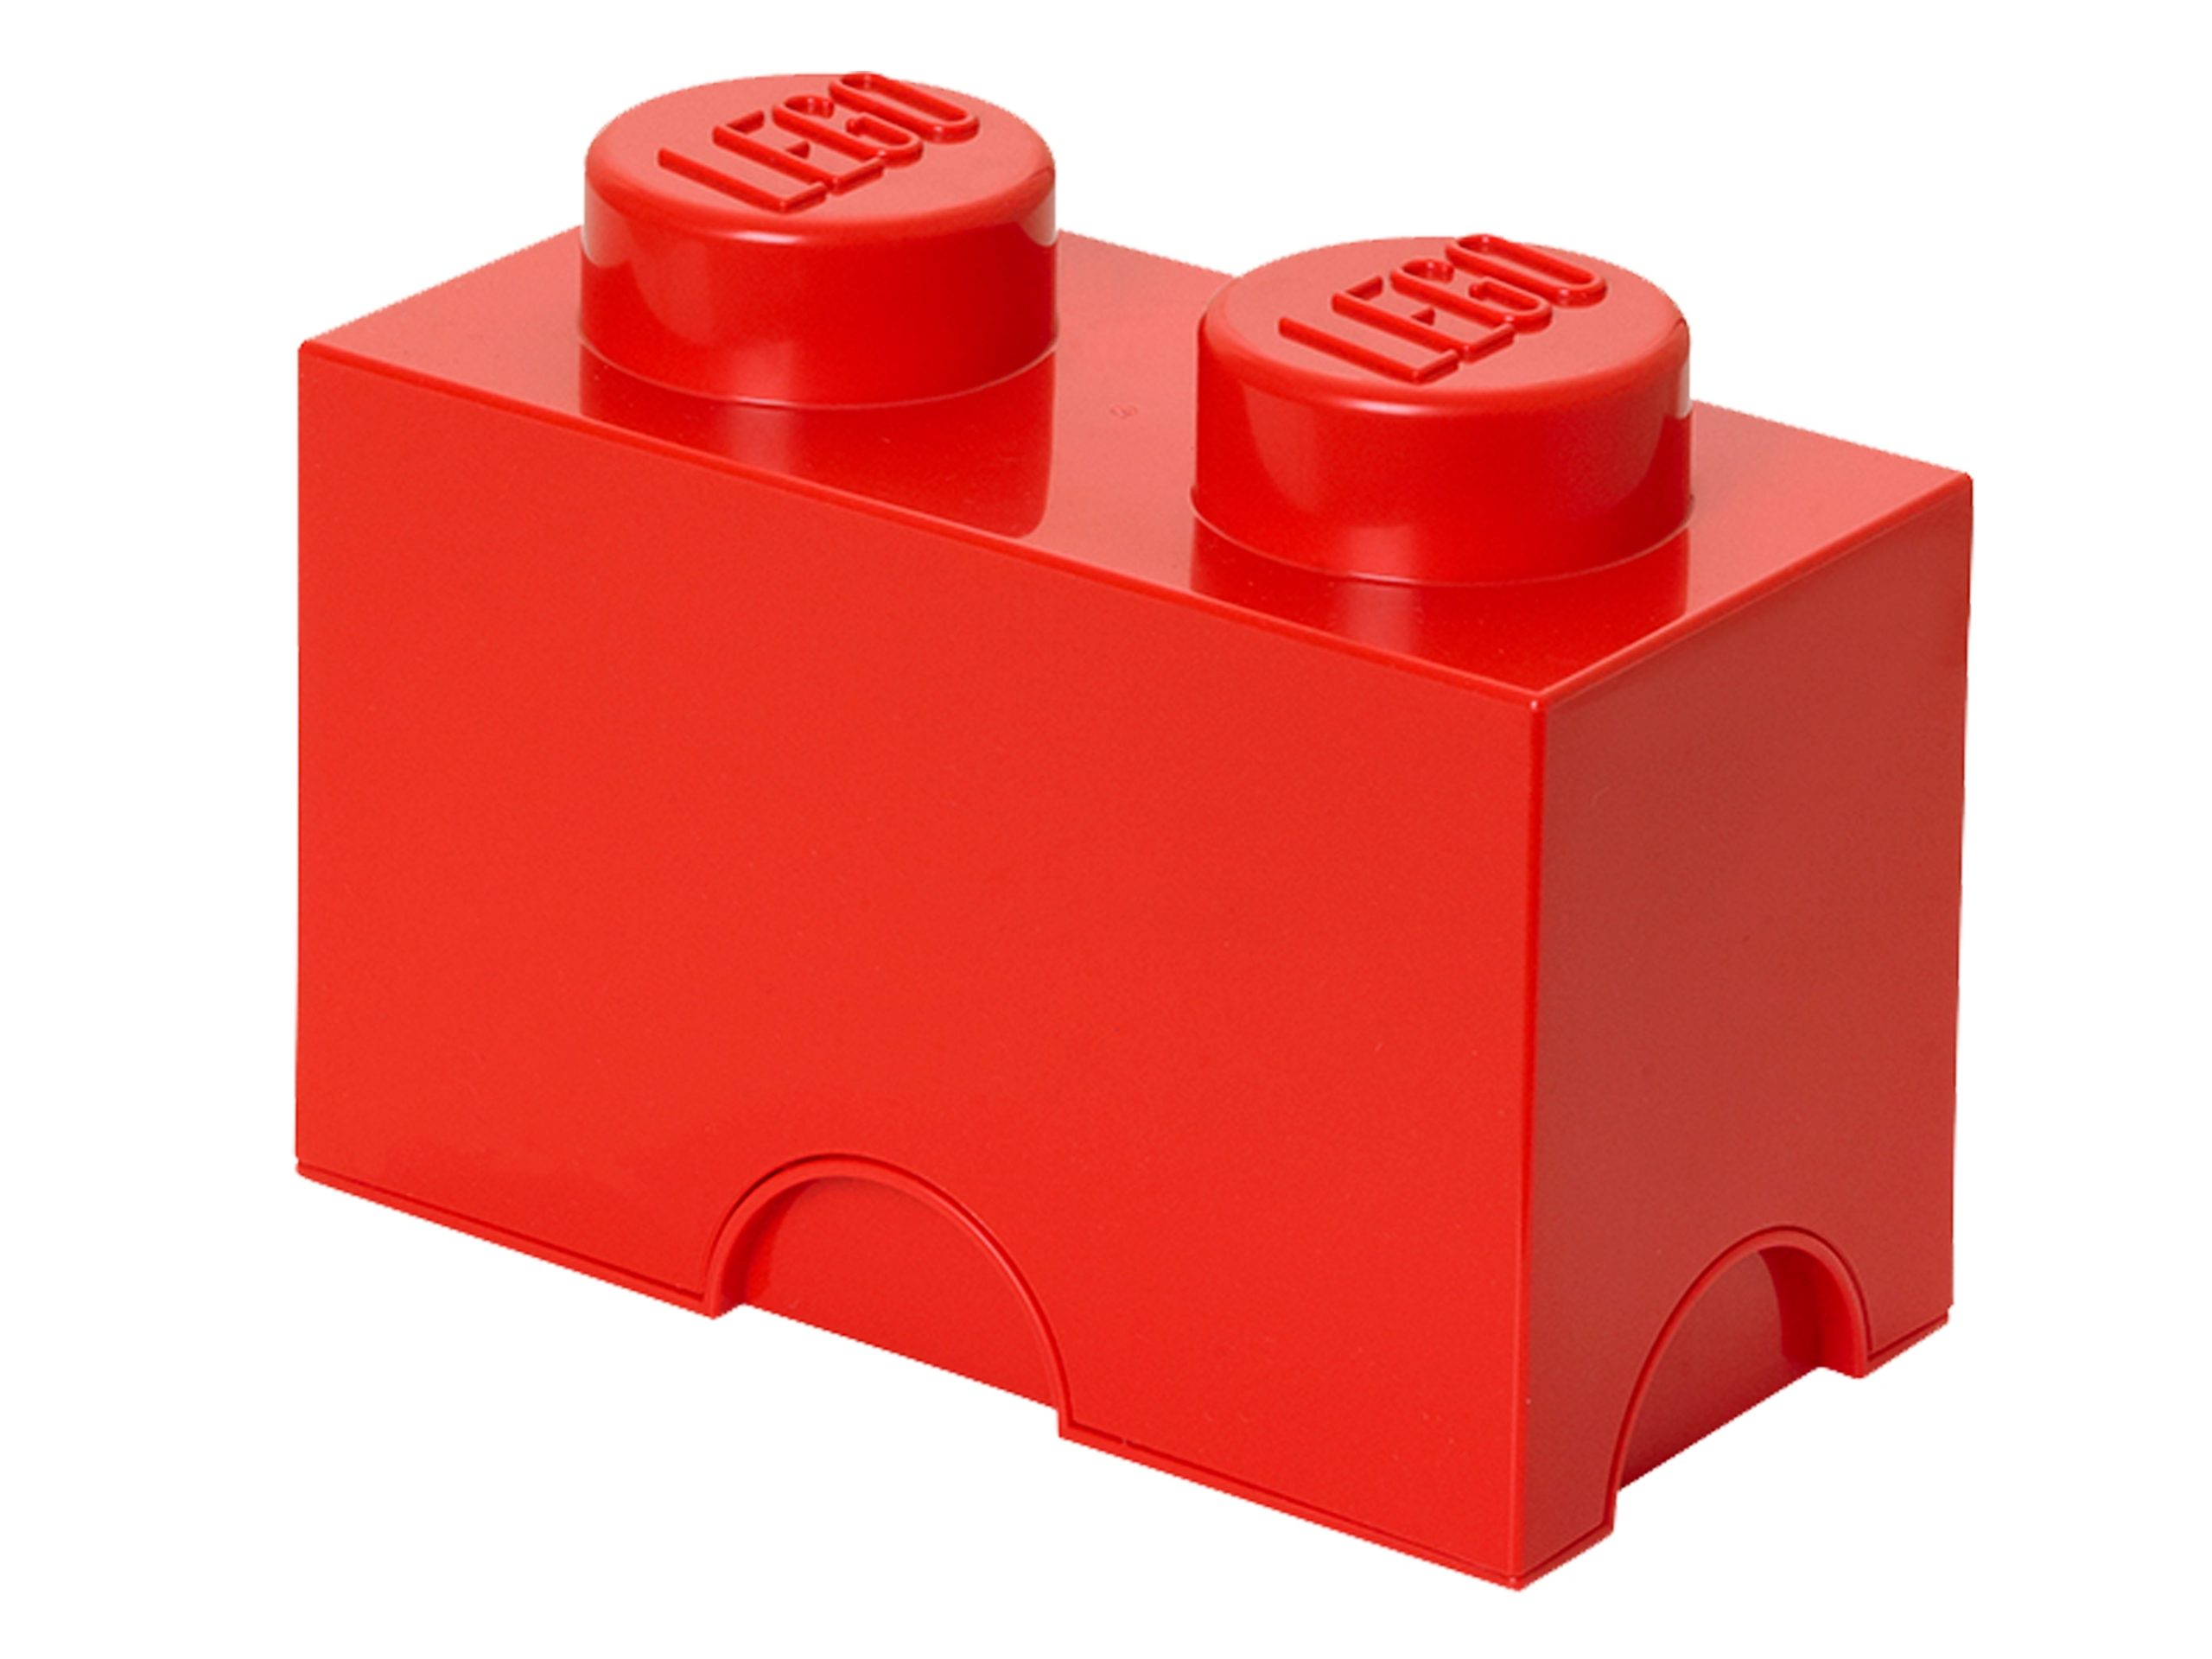 lego 5004279 2 stud red storage brick scaled